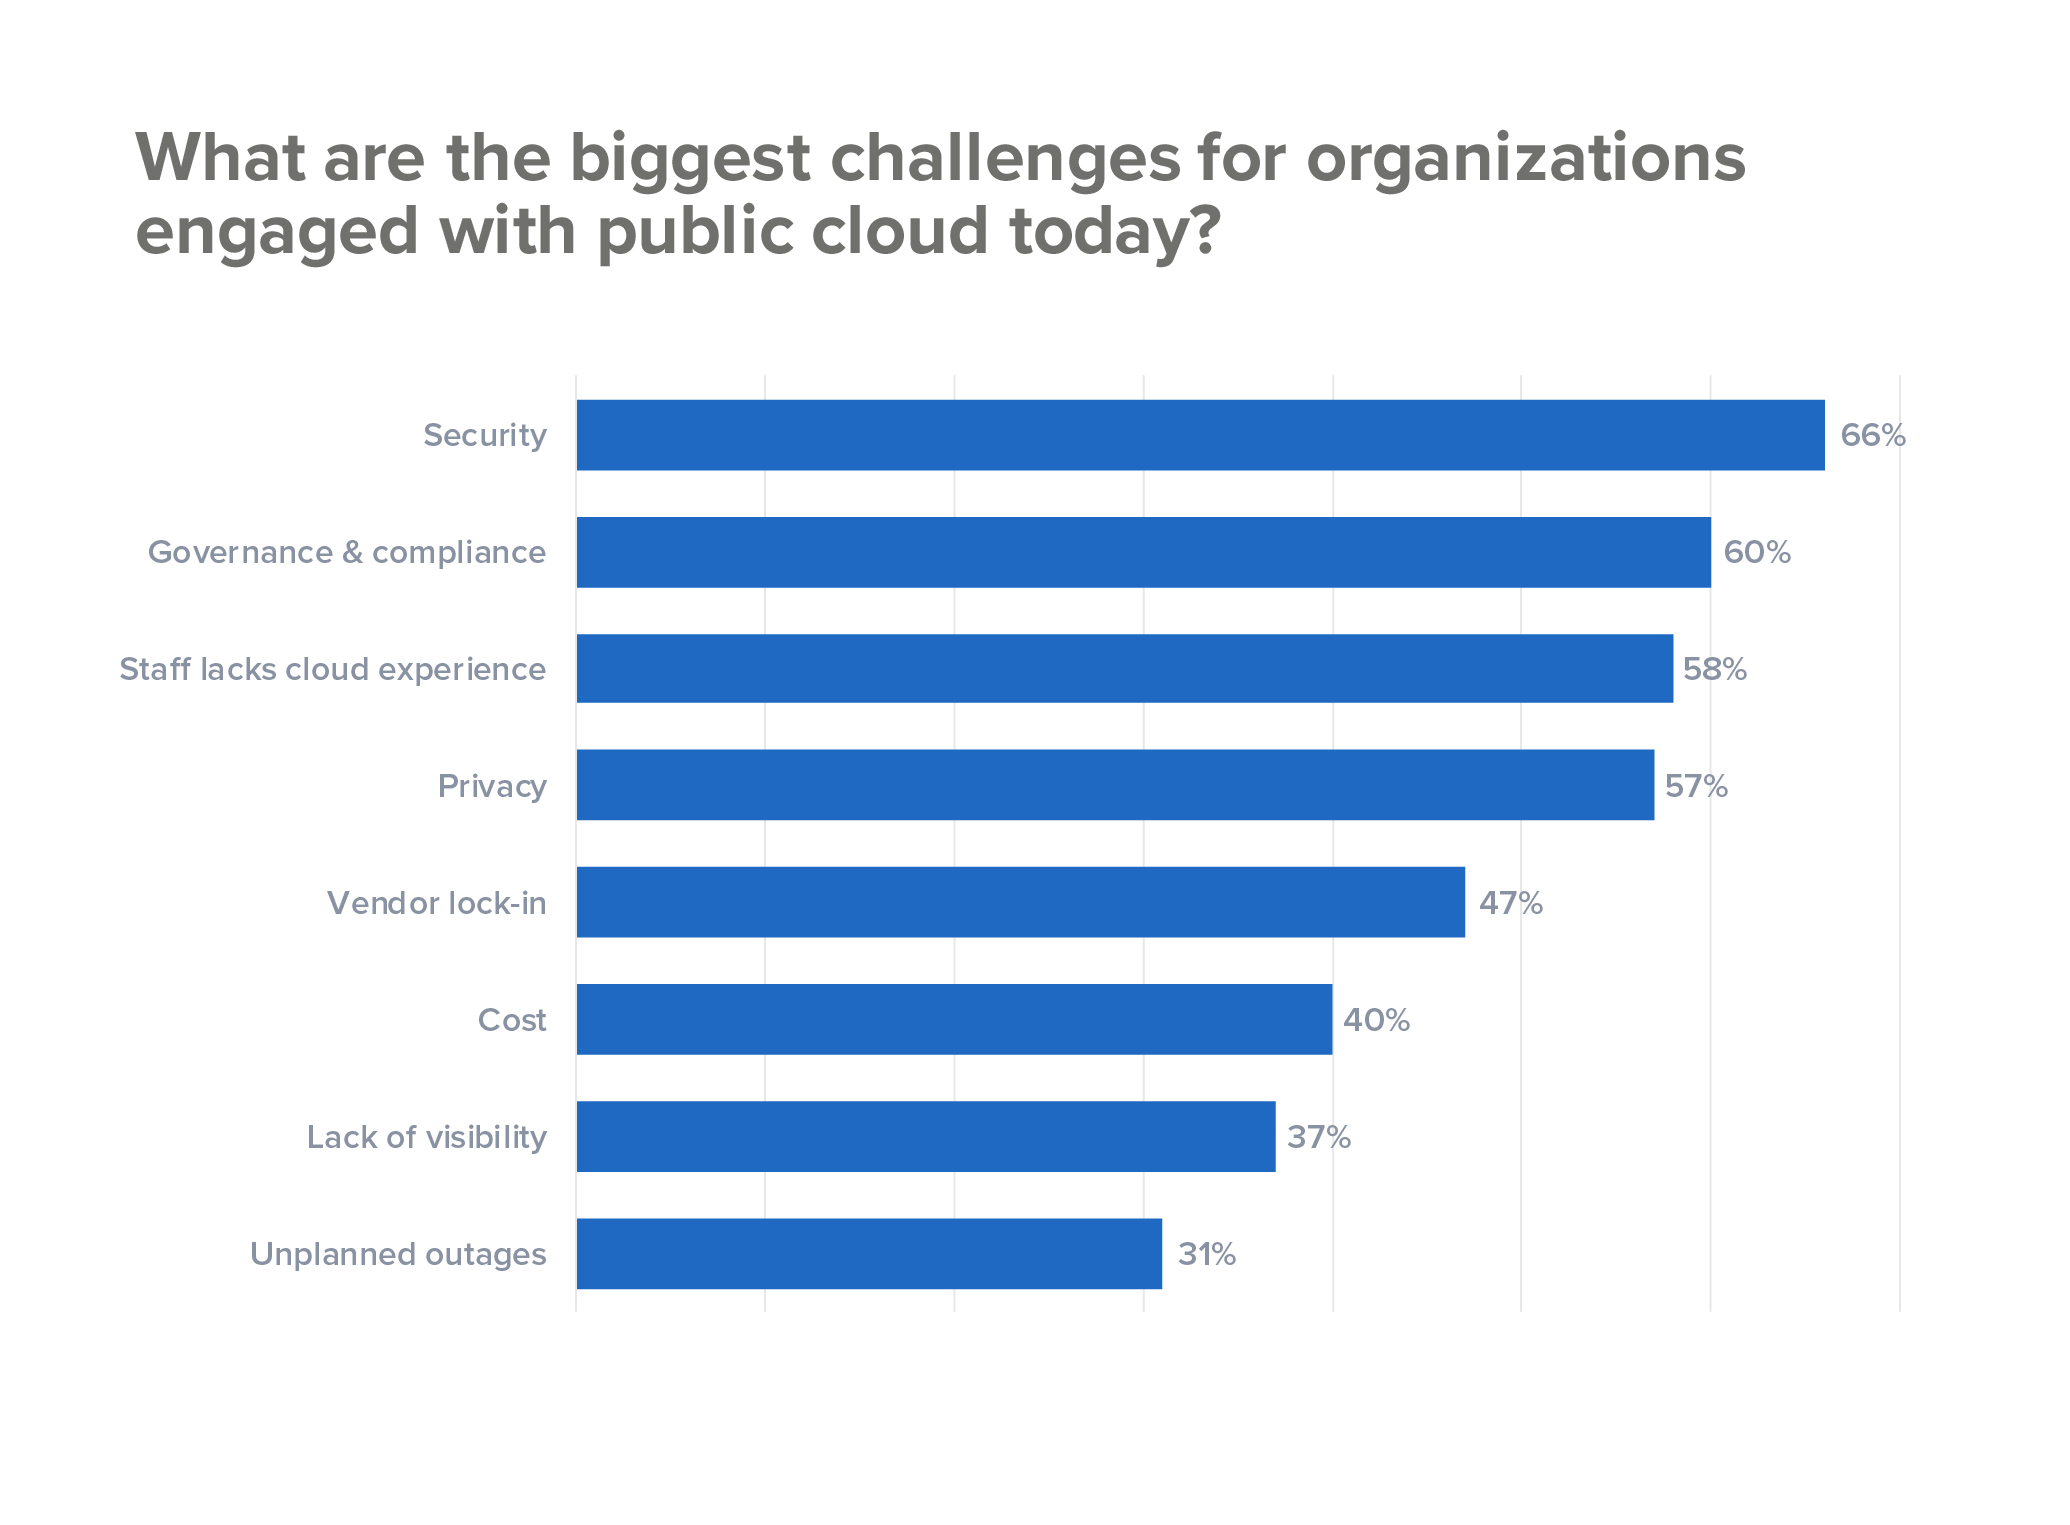 Biggest challenges for companies engaged with public cloud